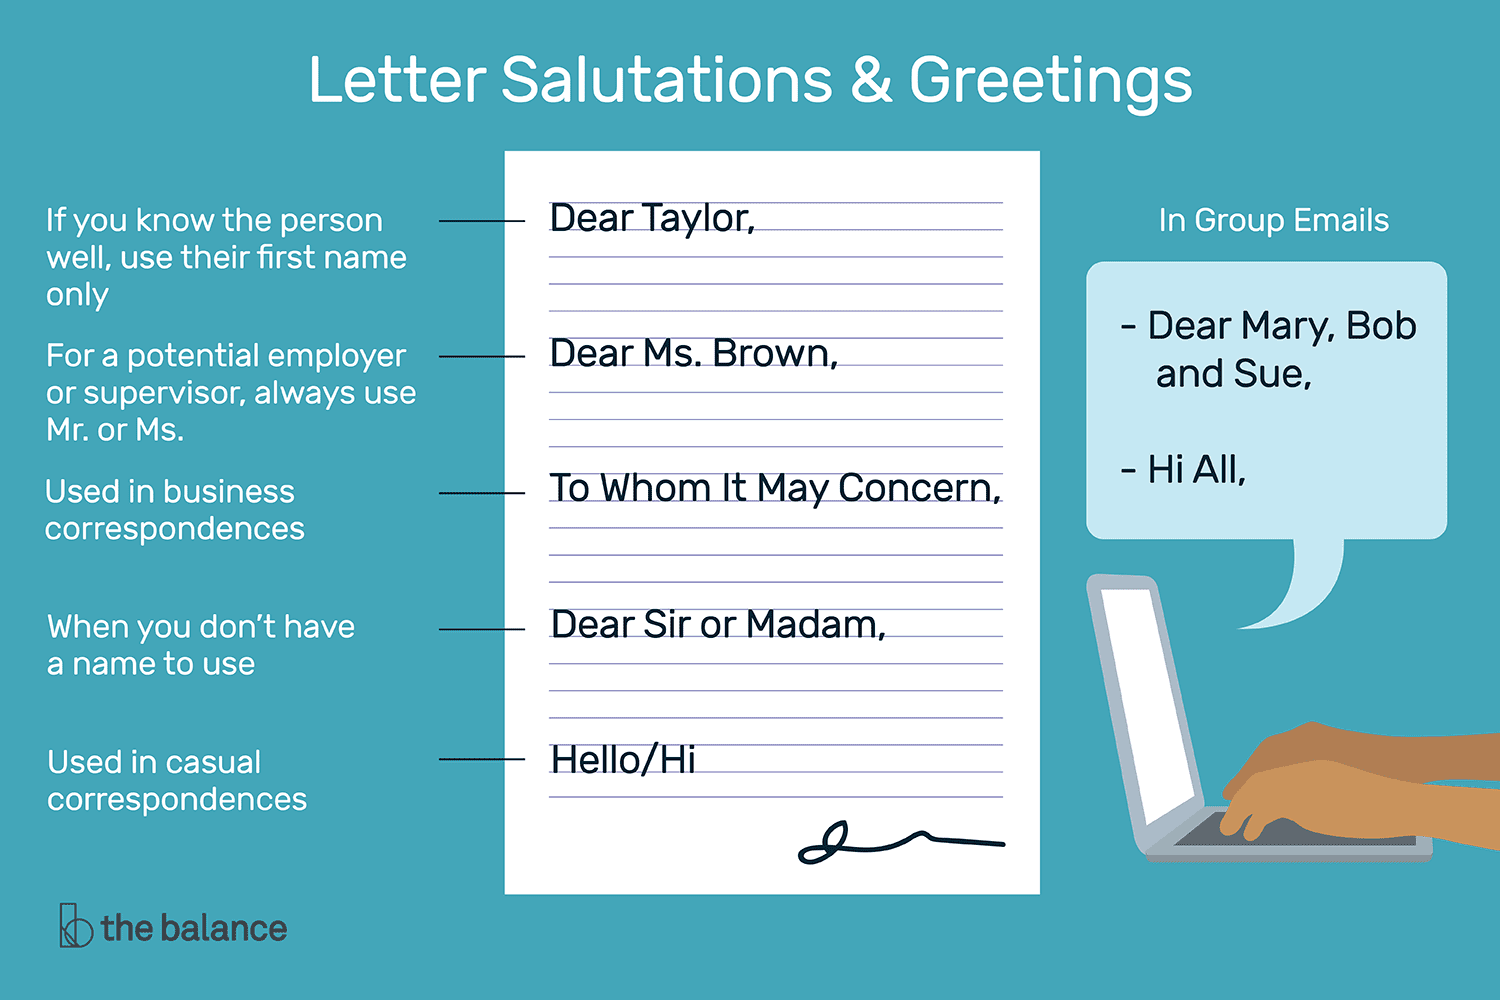 greetings of the letter sample